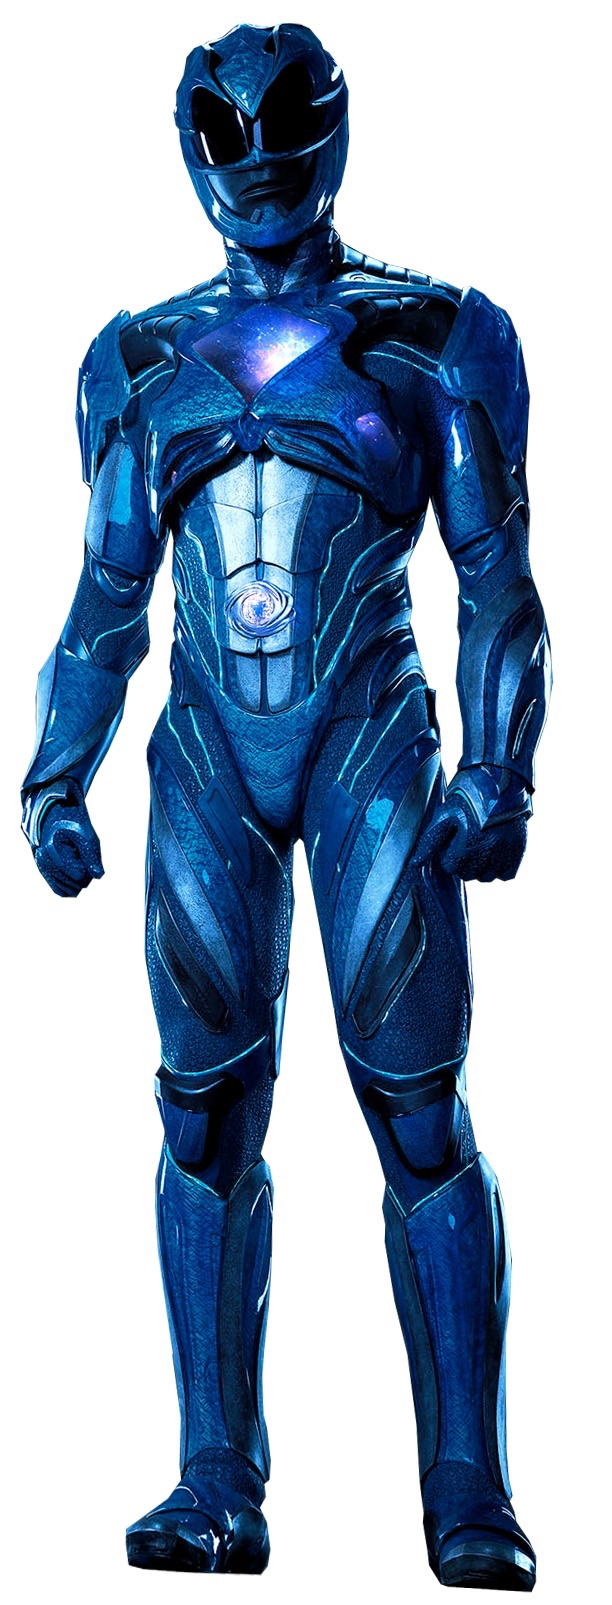 Billy Cranston (Duo-Franchise)